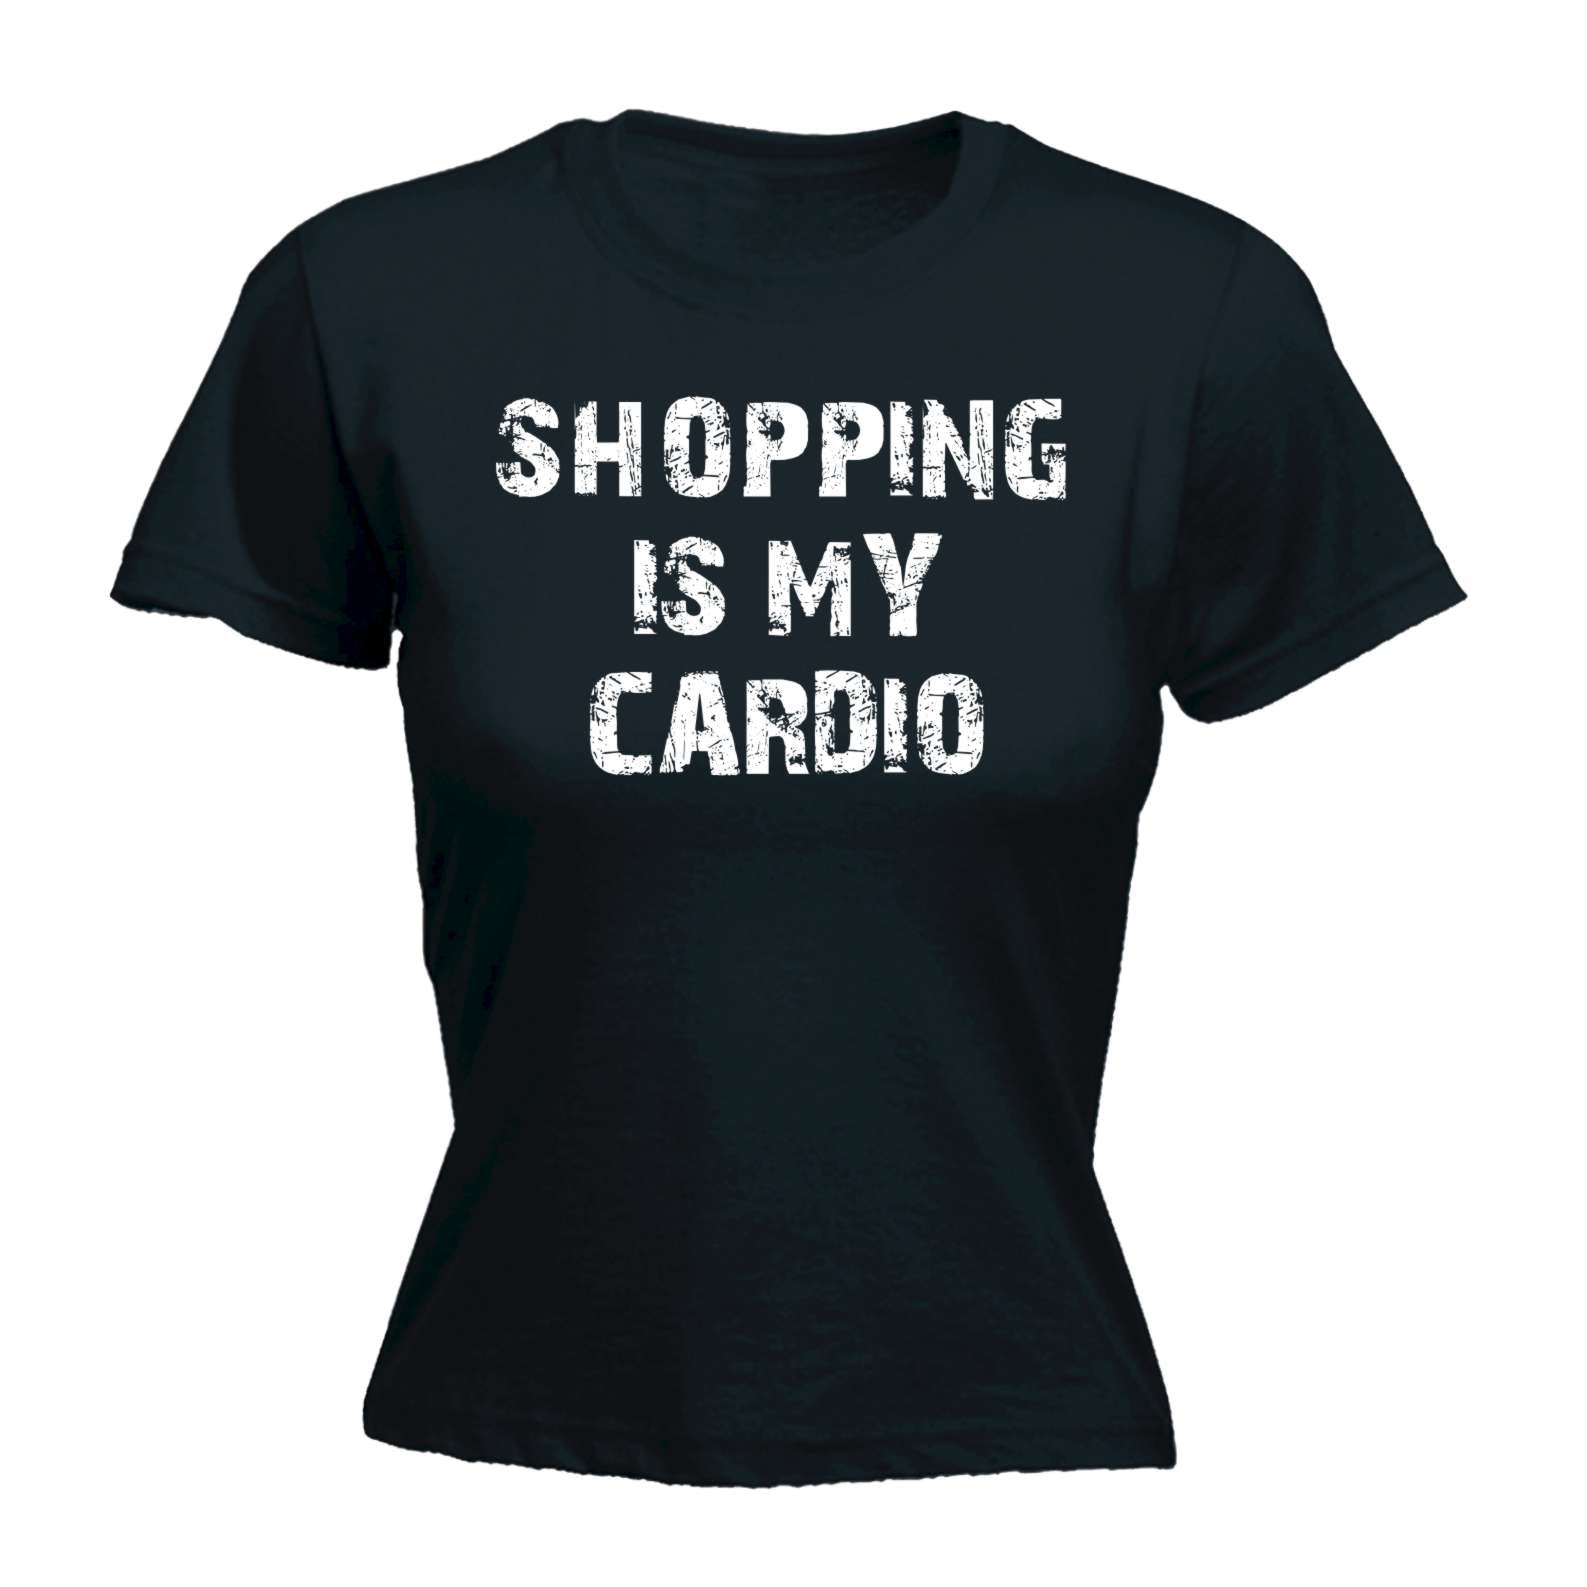 28e76663 Funny Womens t shirt - 123t Shopping Is My Cardio - Adult Humour Joke  Comedy FITTED